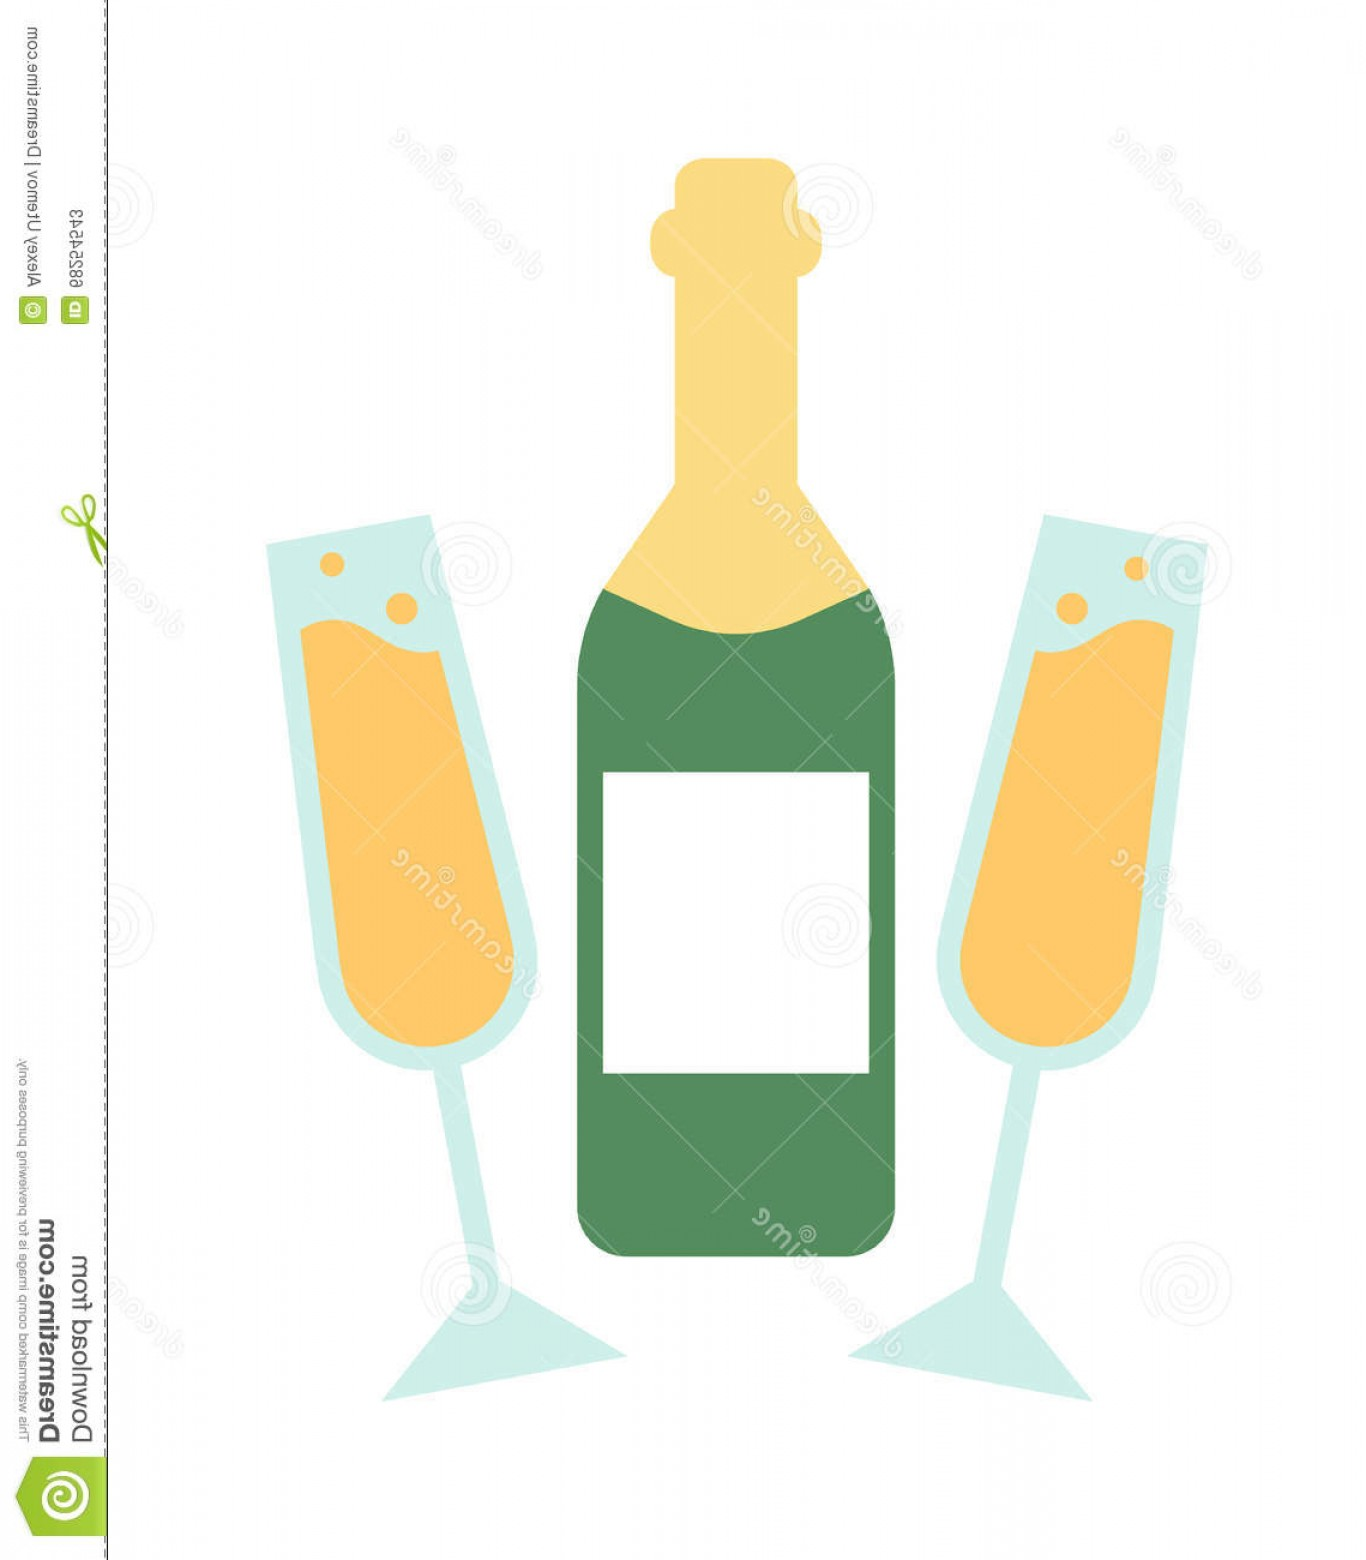 Vector Champagne Party: Stock Illustration Champagne Bottle Glasses Flat Vector Illustration Glass Wedding Glass Party Drink Image